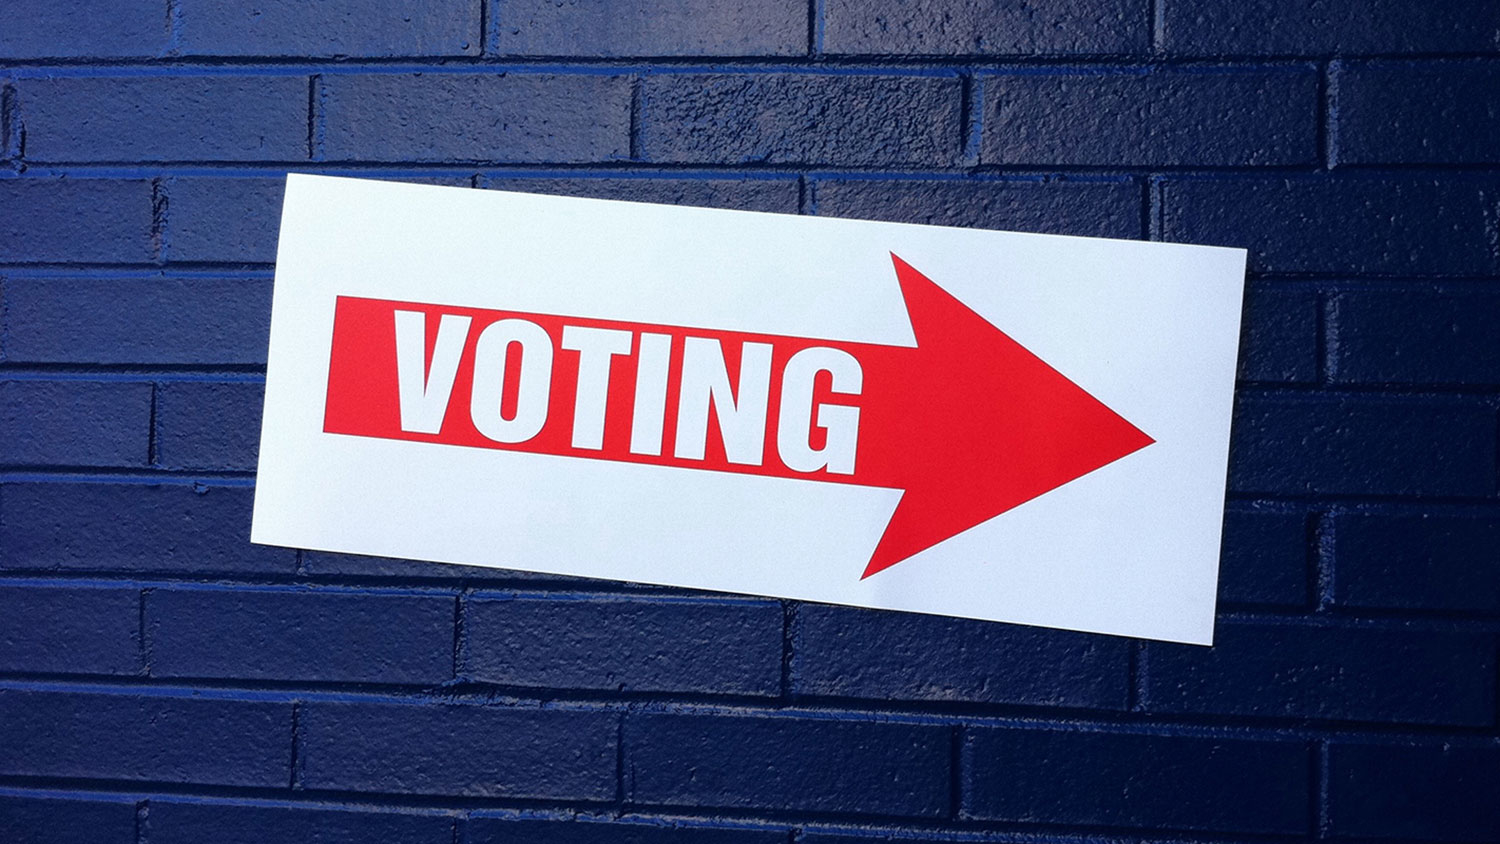 voting sign on a brick wall